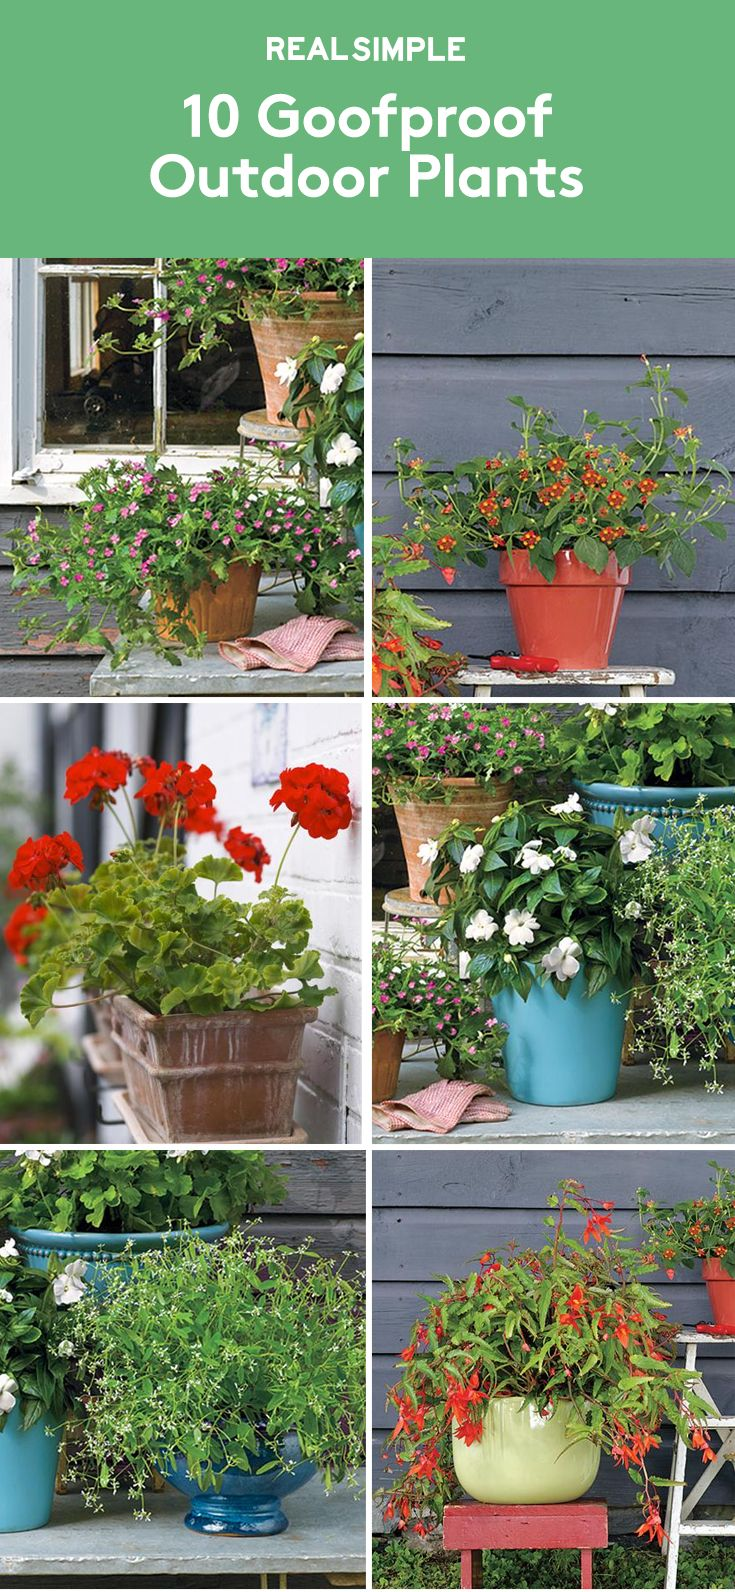 10 Goofproof Outdoor Plants   If tending to your flora is leaving you feeling wilted, take heart: These plants are almost impossible to kill.